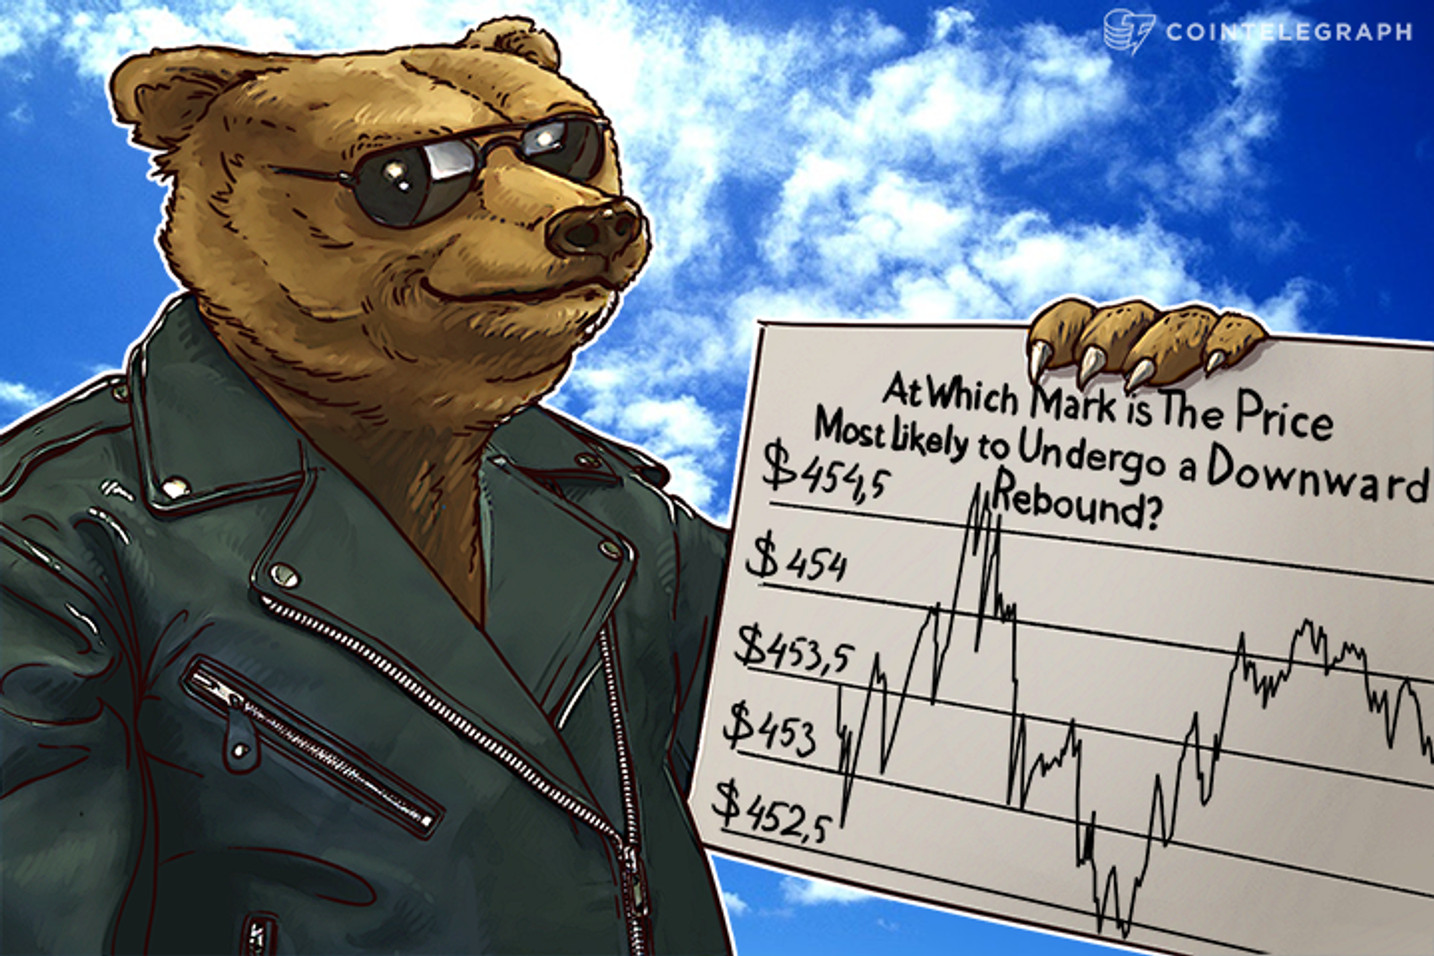 Bitcoin Price Analysis: 5/18/2016